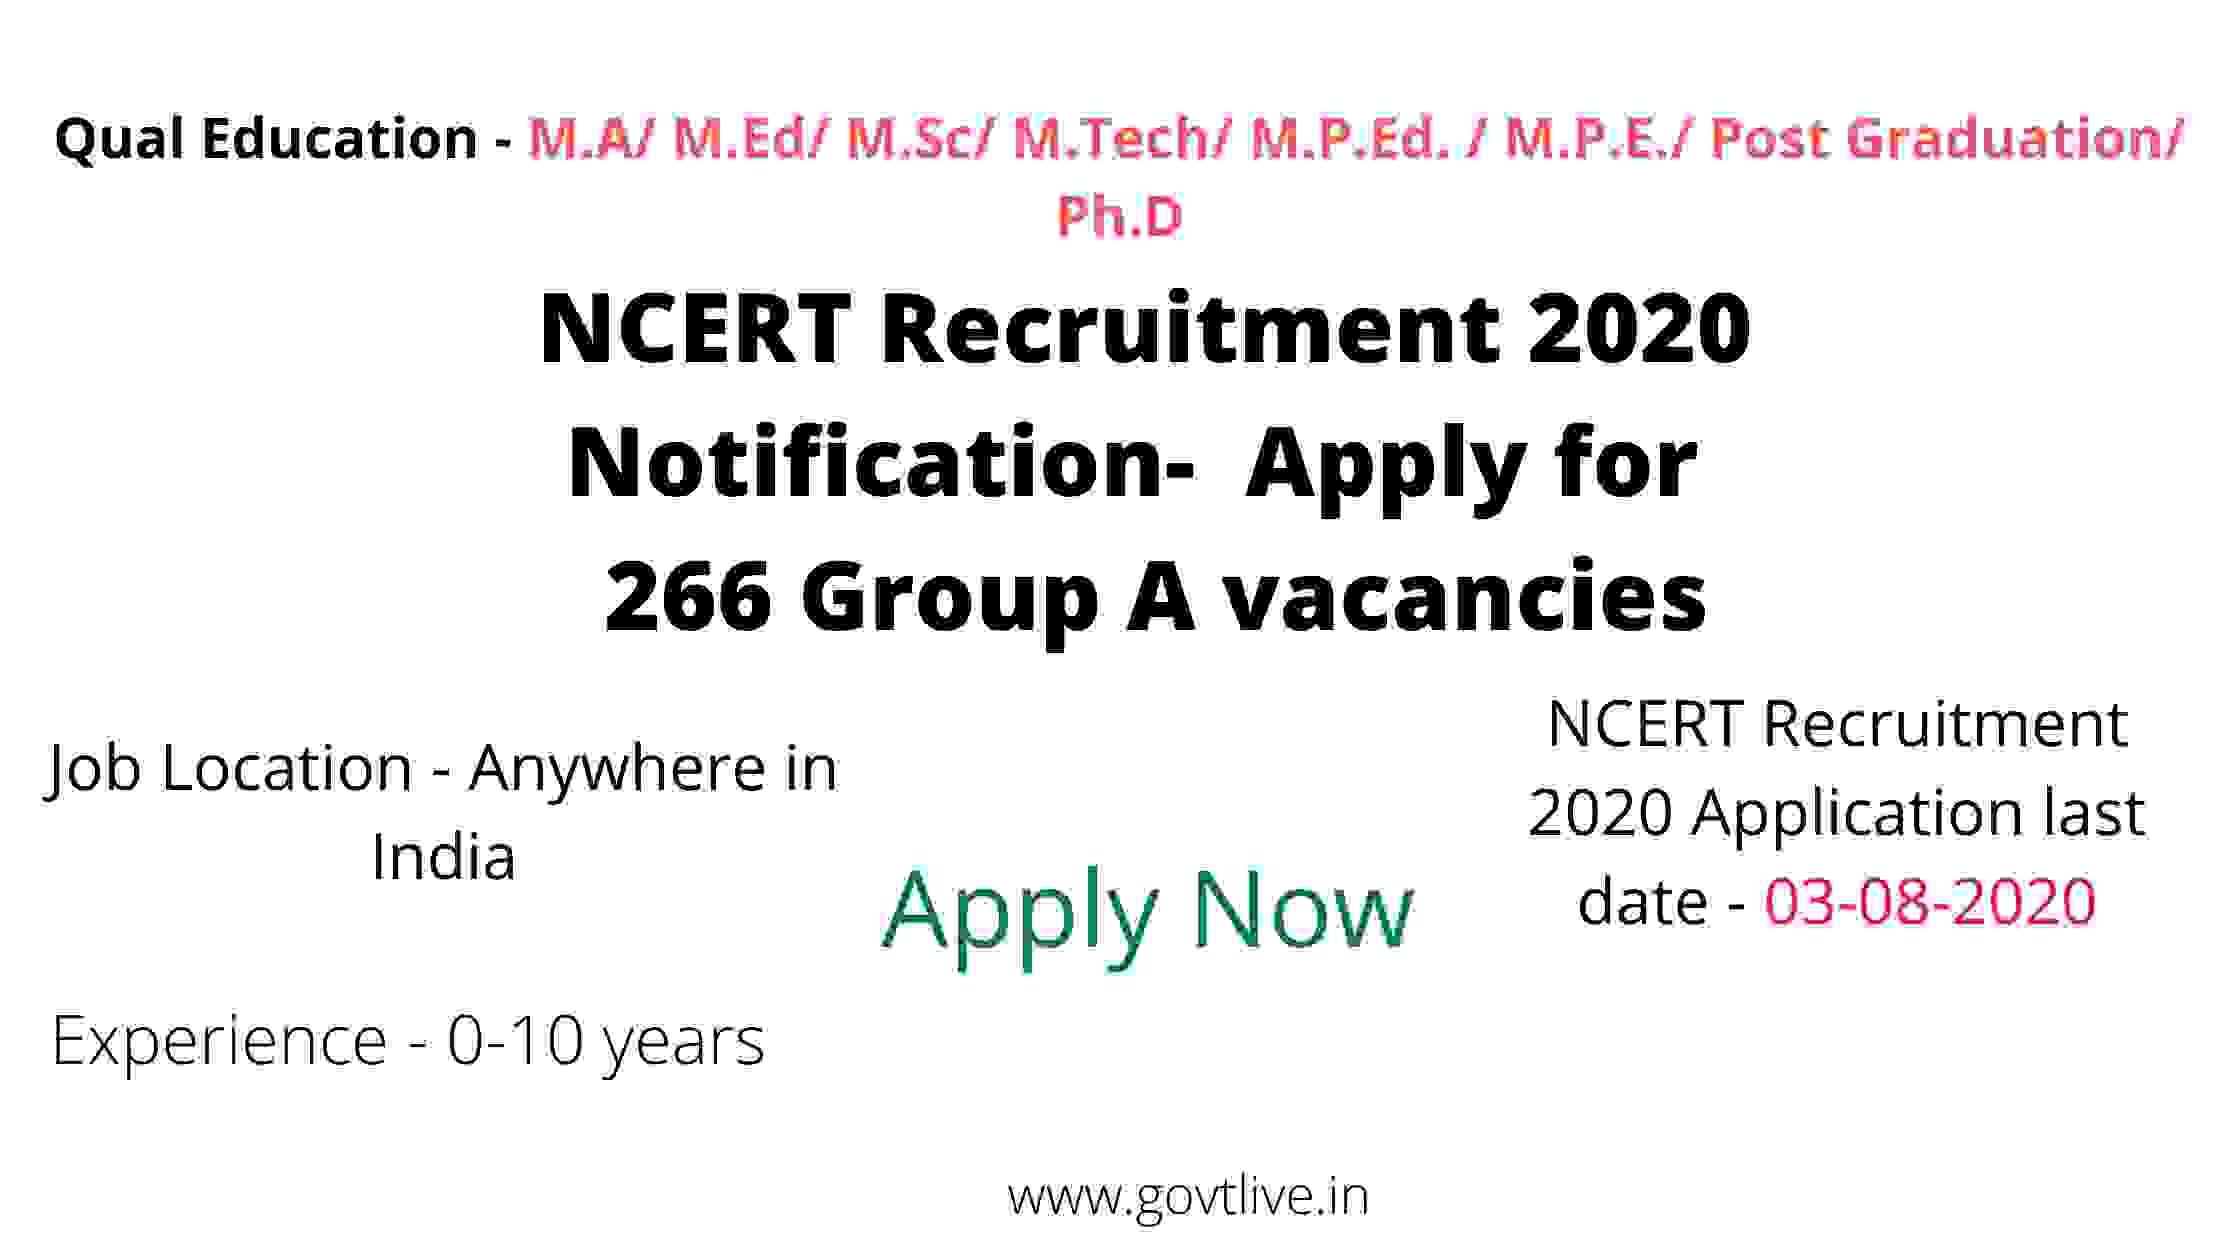 NCERT Recruitment 2020 Notification-  Apply for  266 Group A vacancies